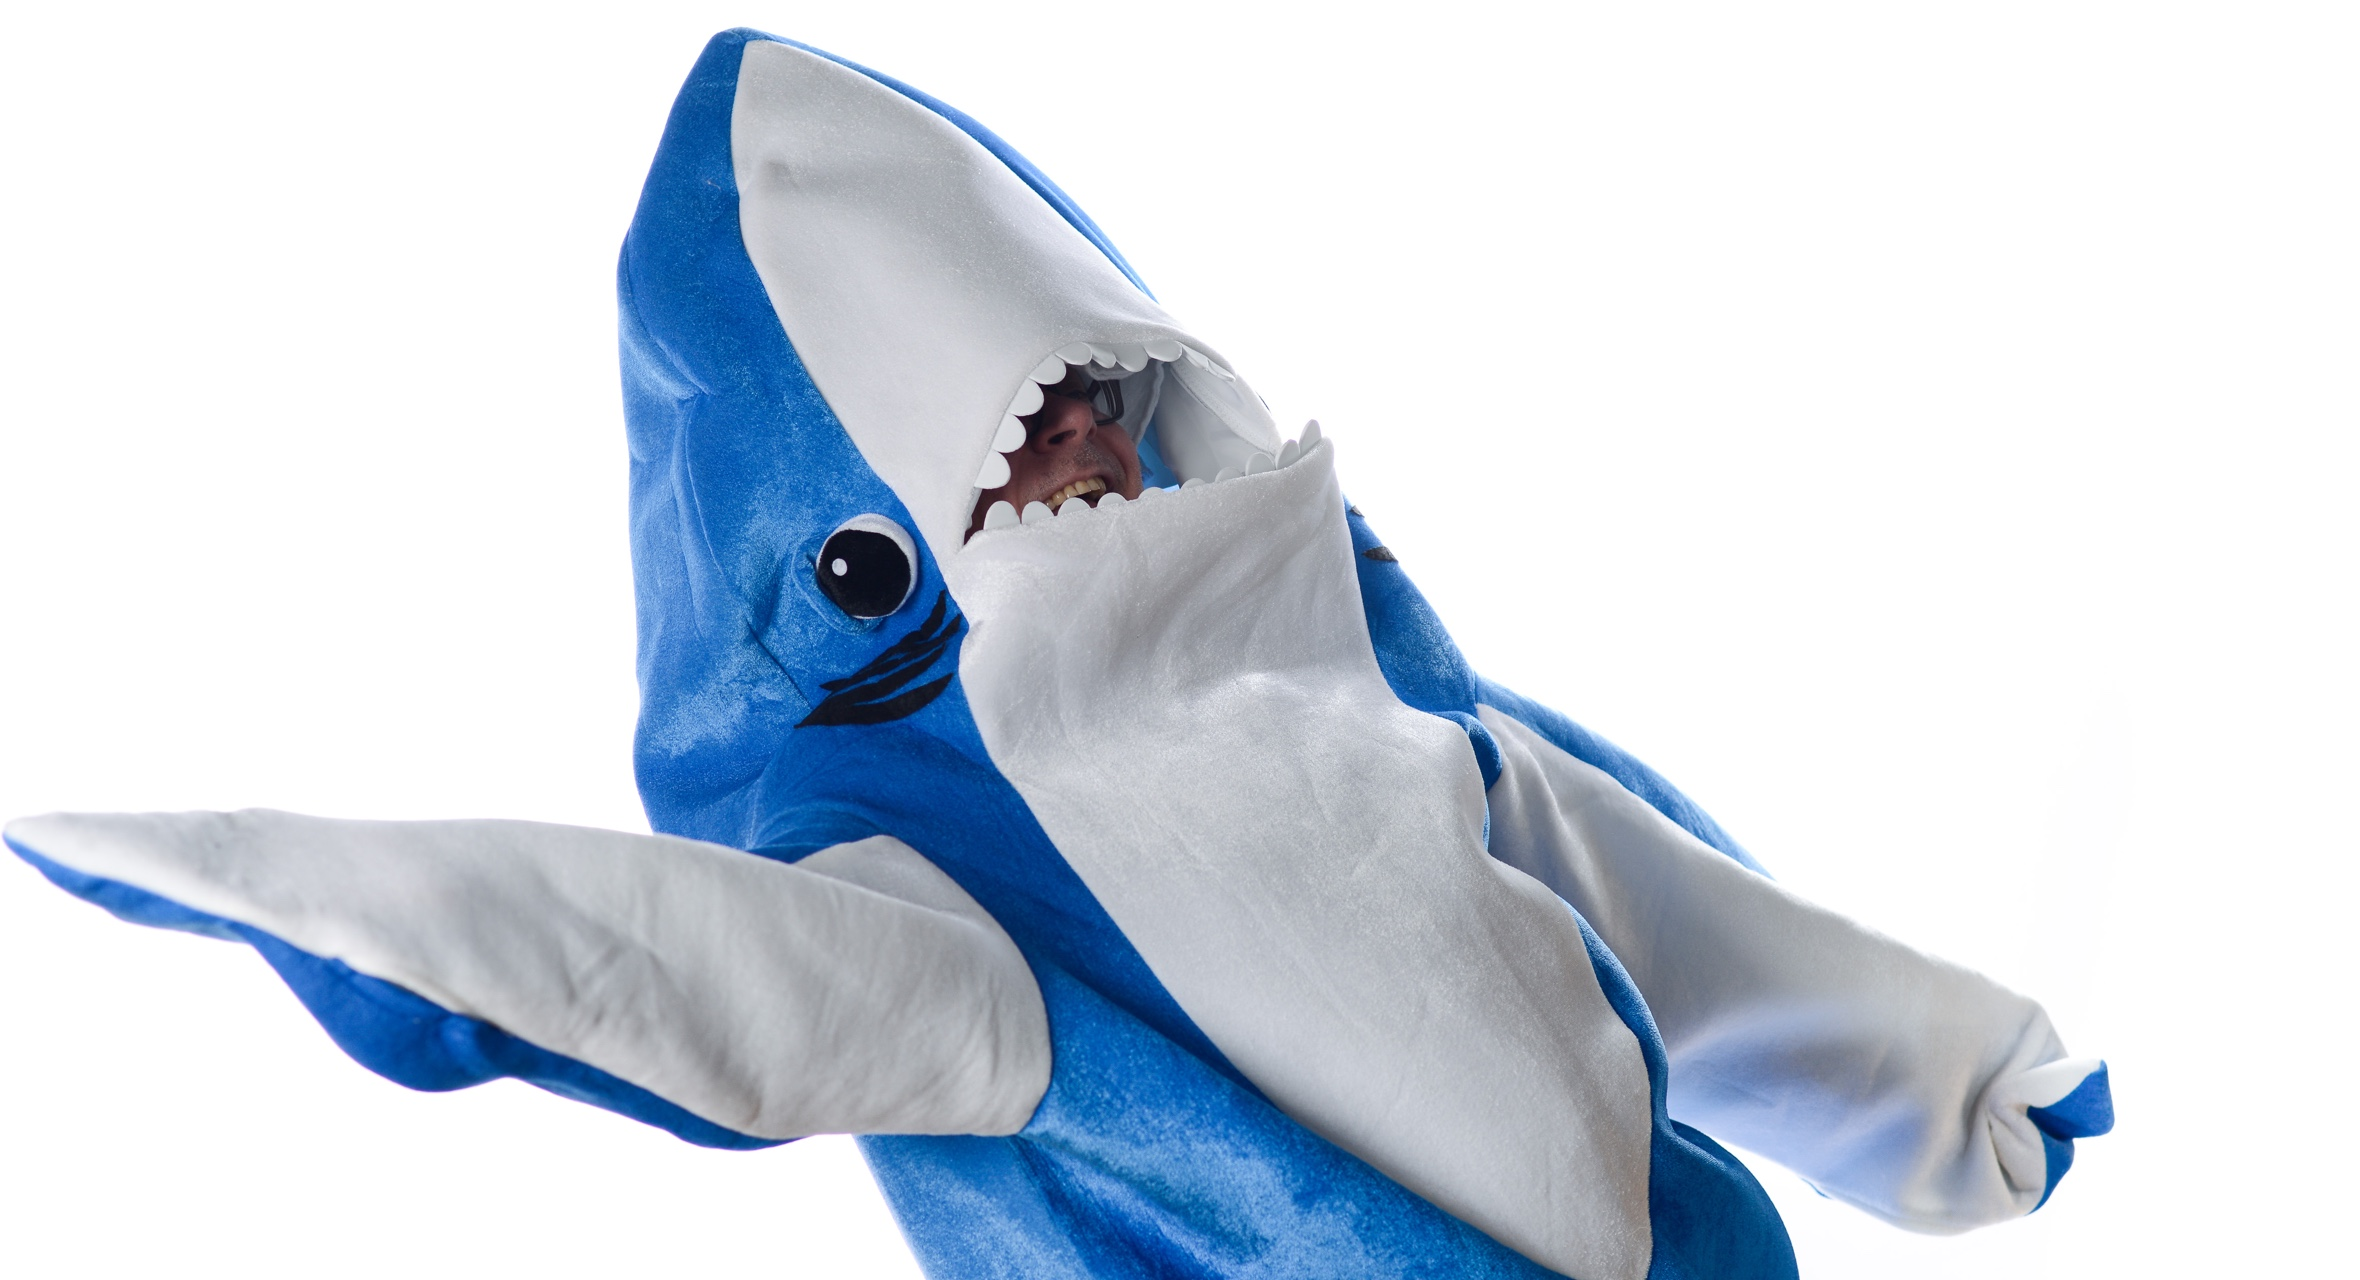 Warren Wilansky, Plank's Presindet & Founder, in a baby shark costume